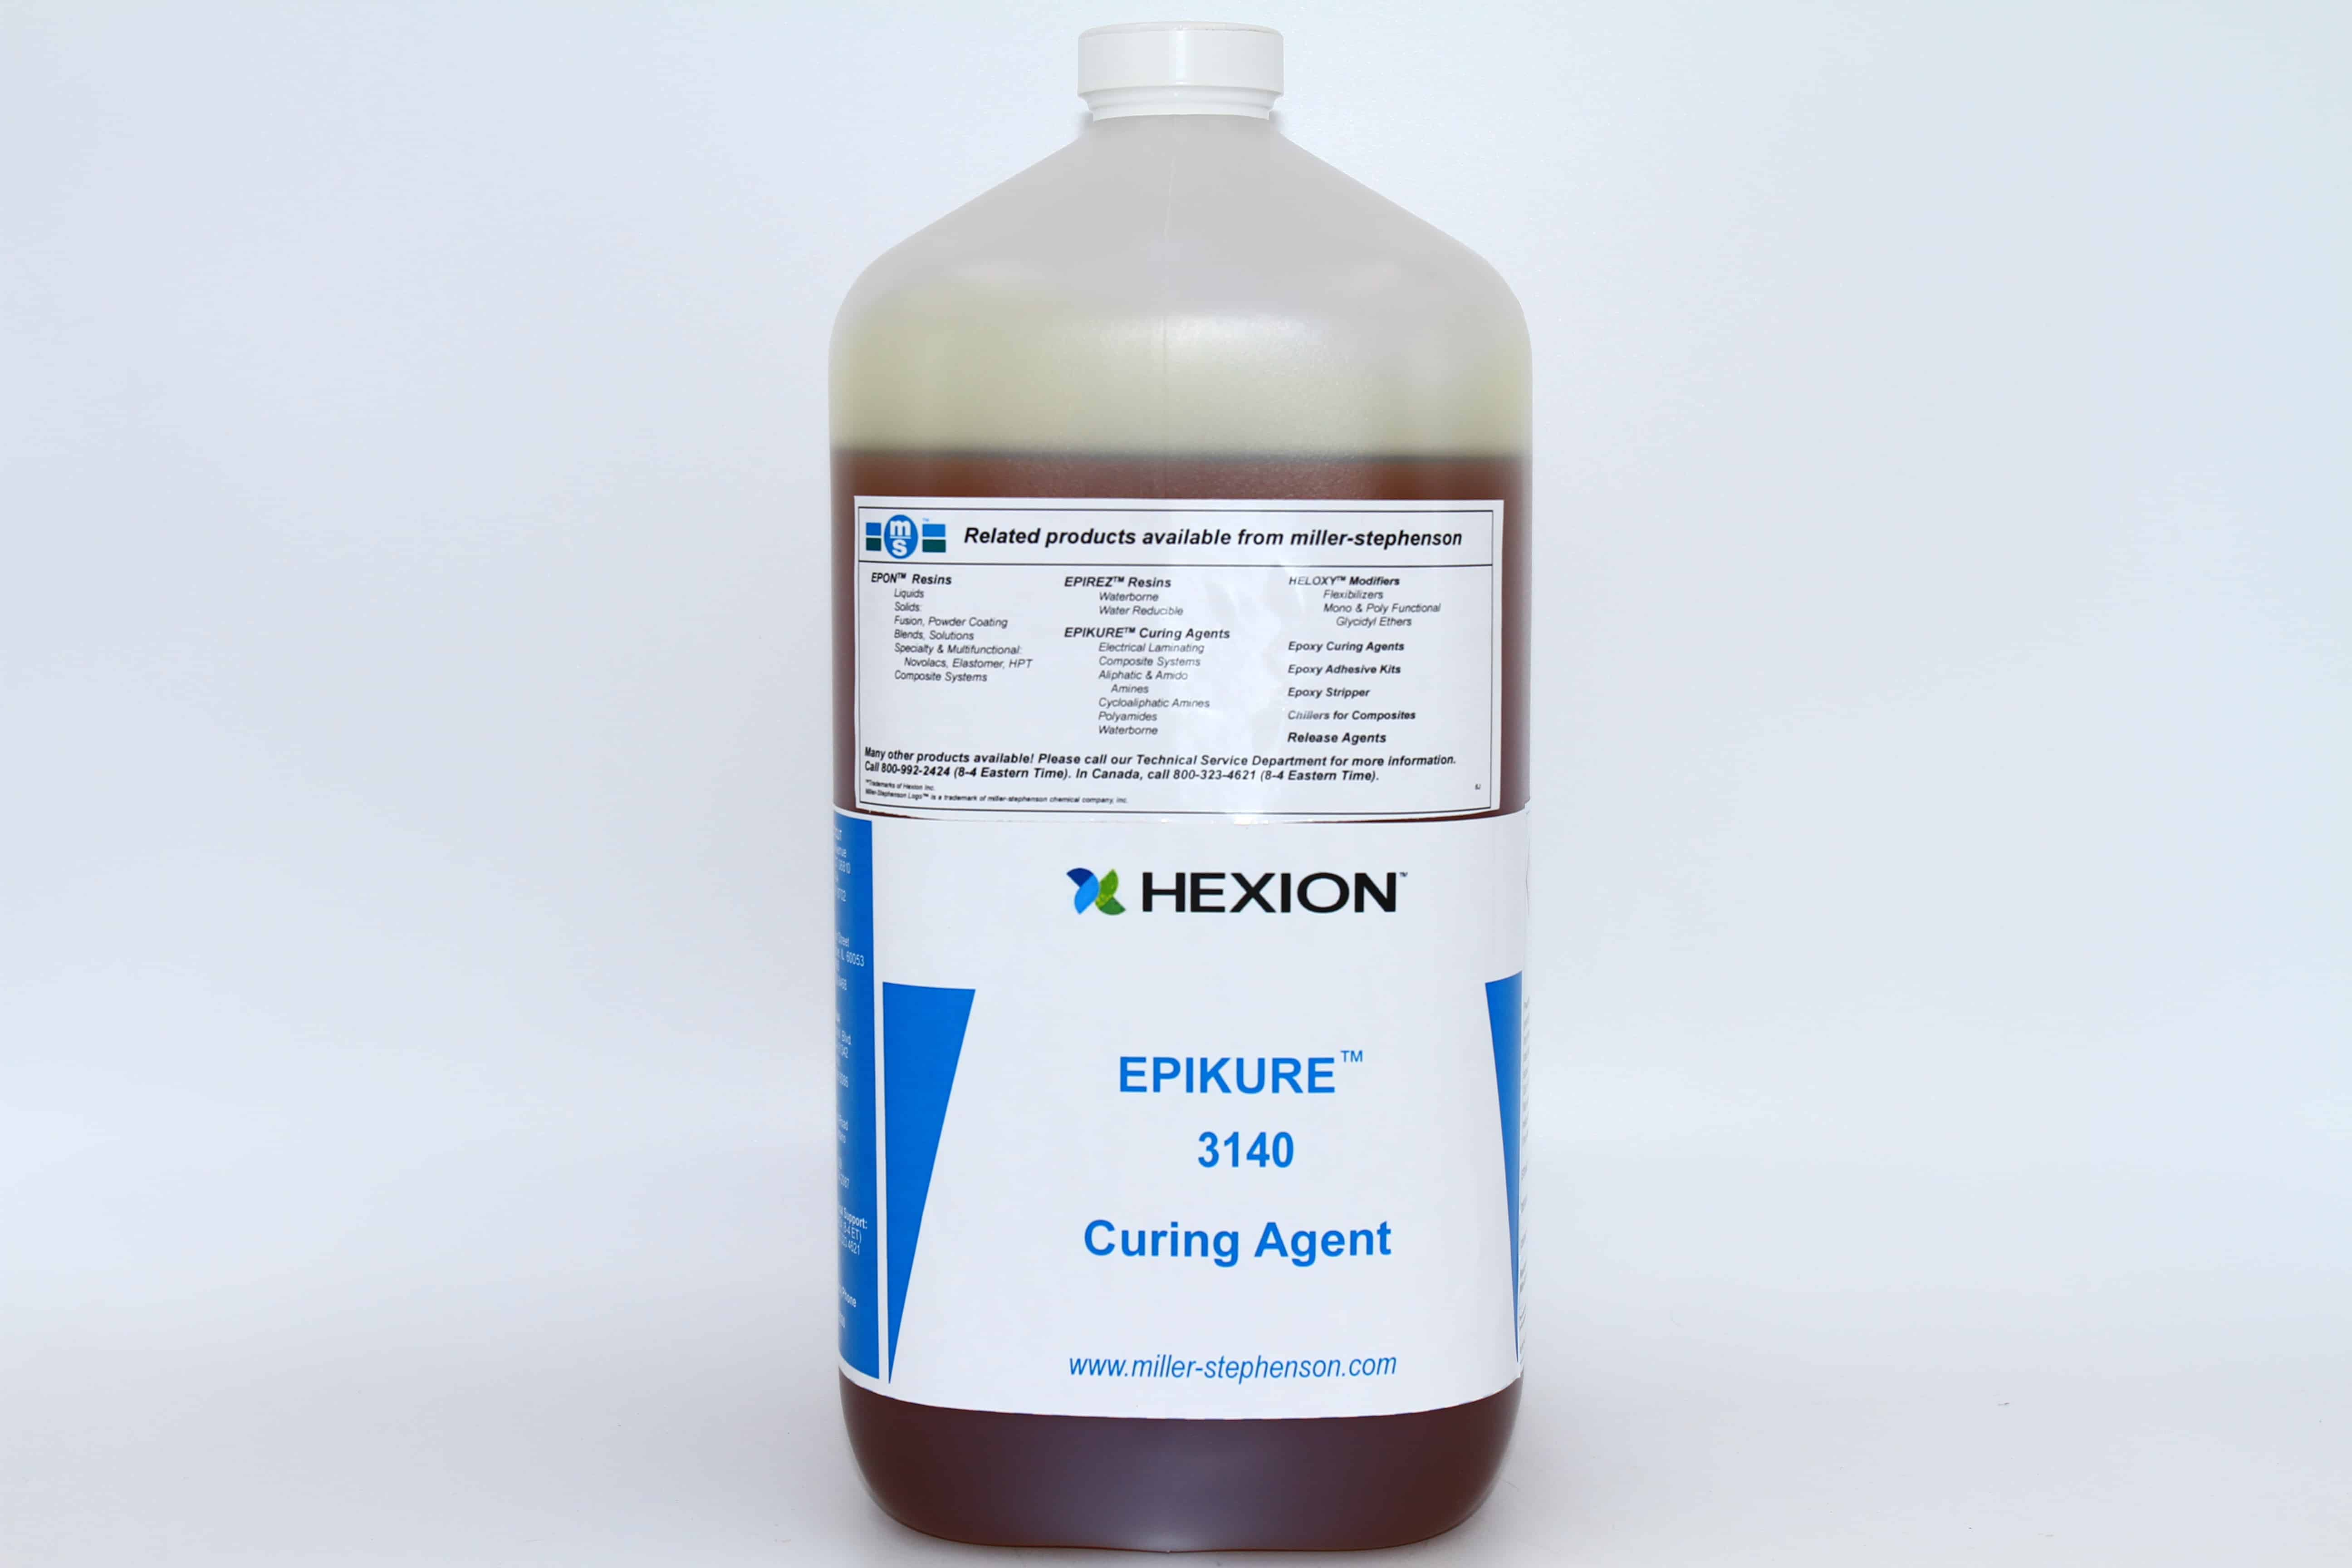 EPIKURE 3140 Curing Agent | EPOXY Curing Agent | Hexion